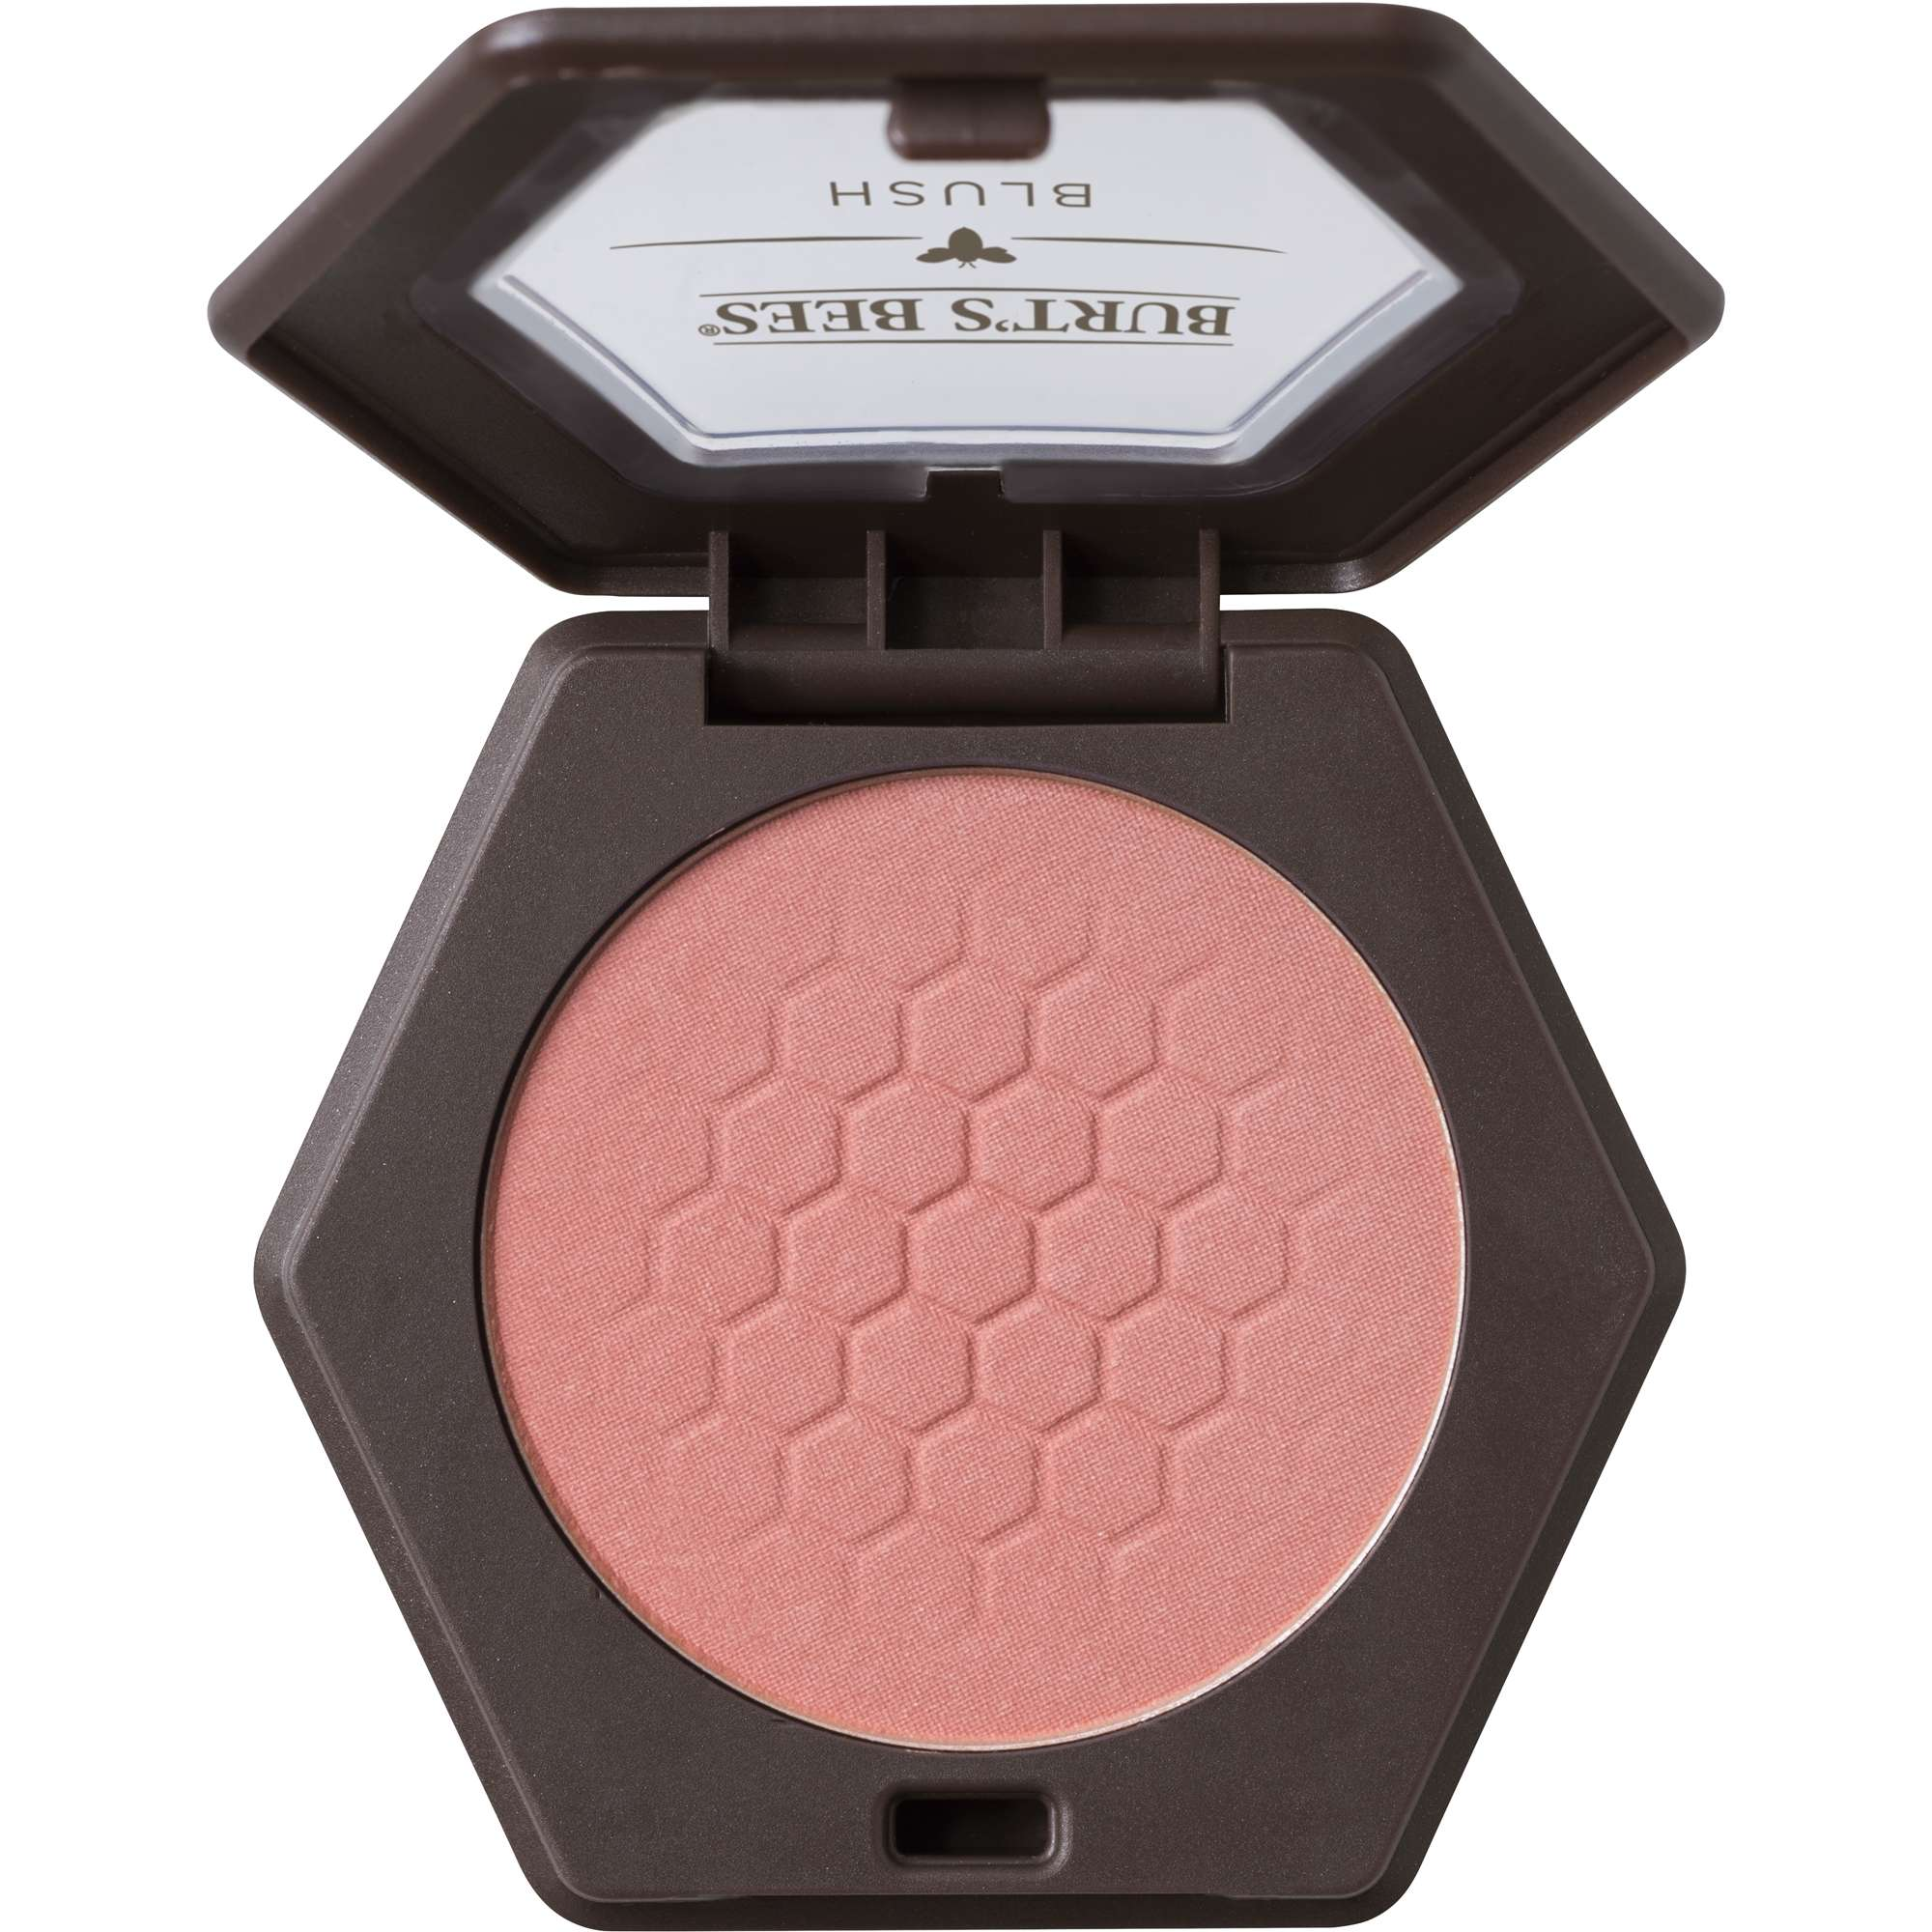 Burt's Bees 100% Natural Blush with Vitamin E, Shy Pink, 0.19 oz